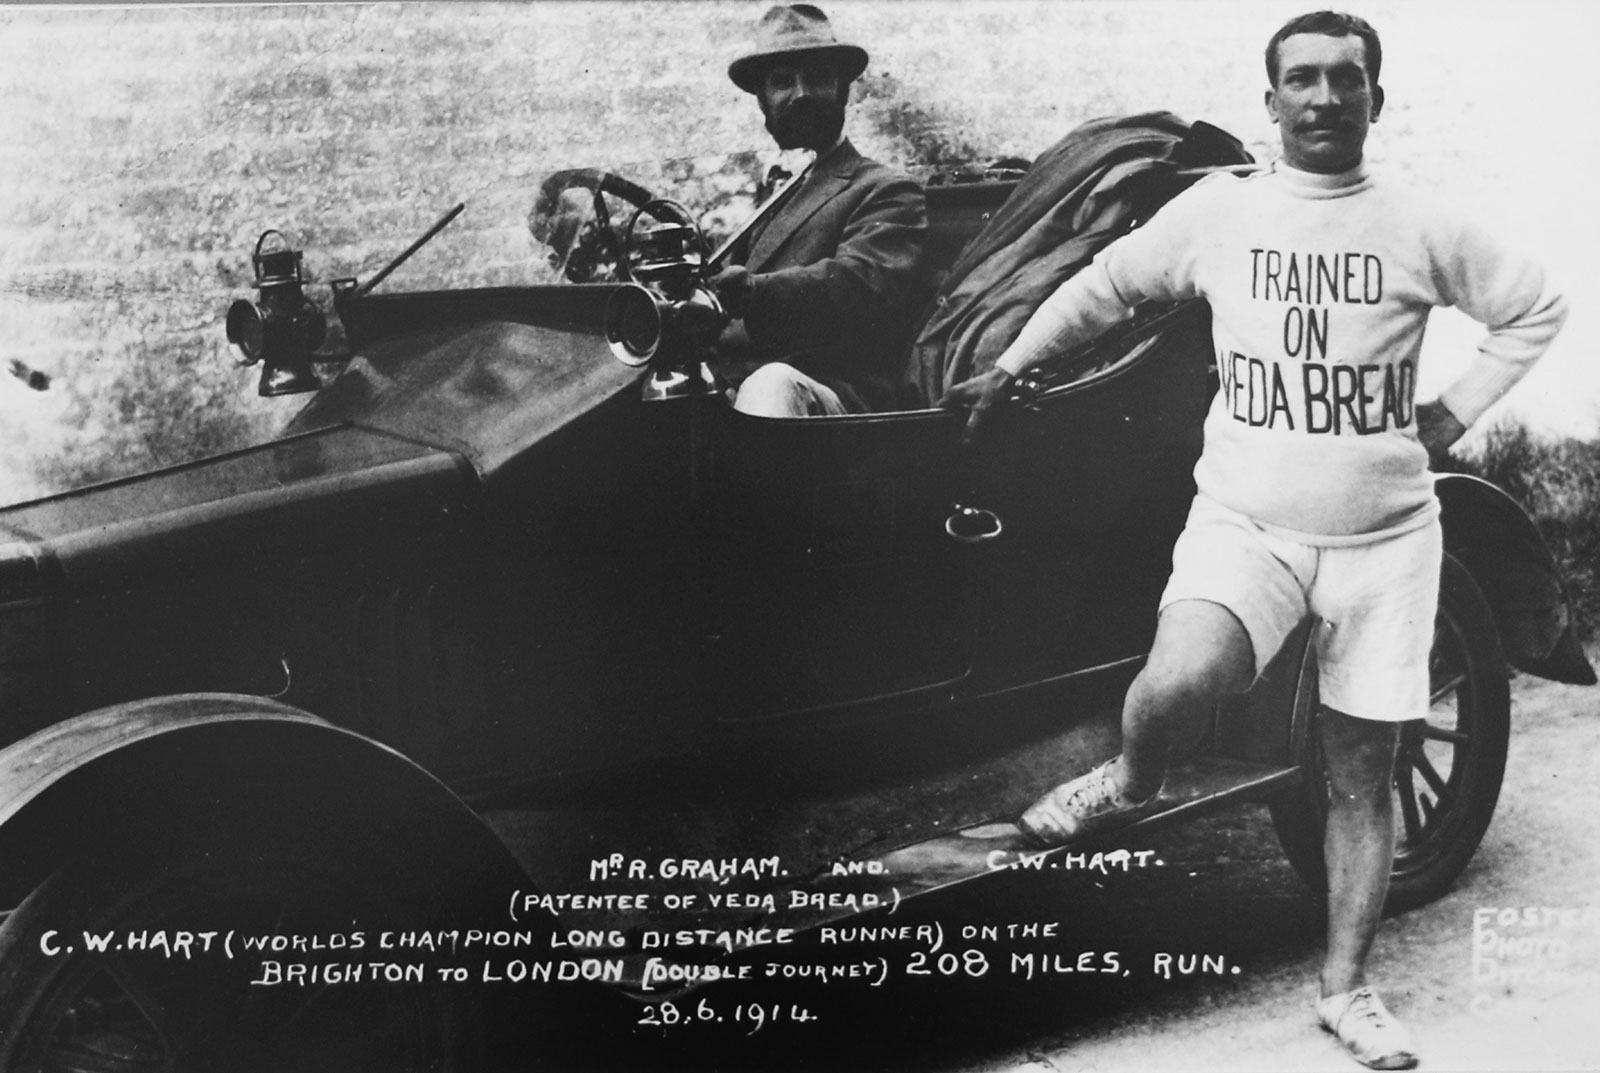 Black and White 1914 photo. An athlete leans on a vintage car, wearing a jumper that says Trained on Veda Bread.